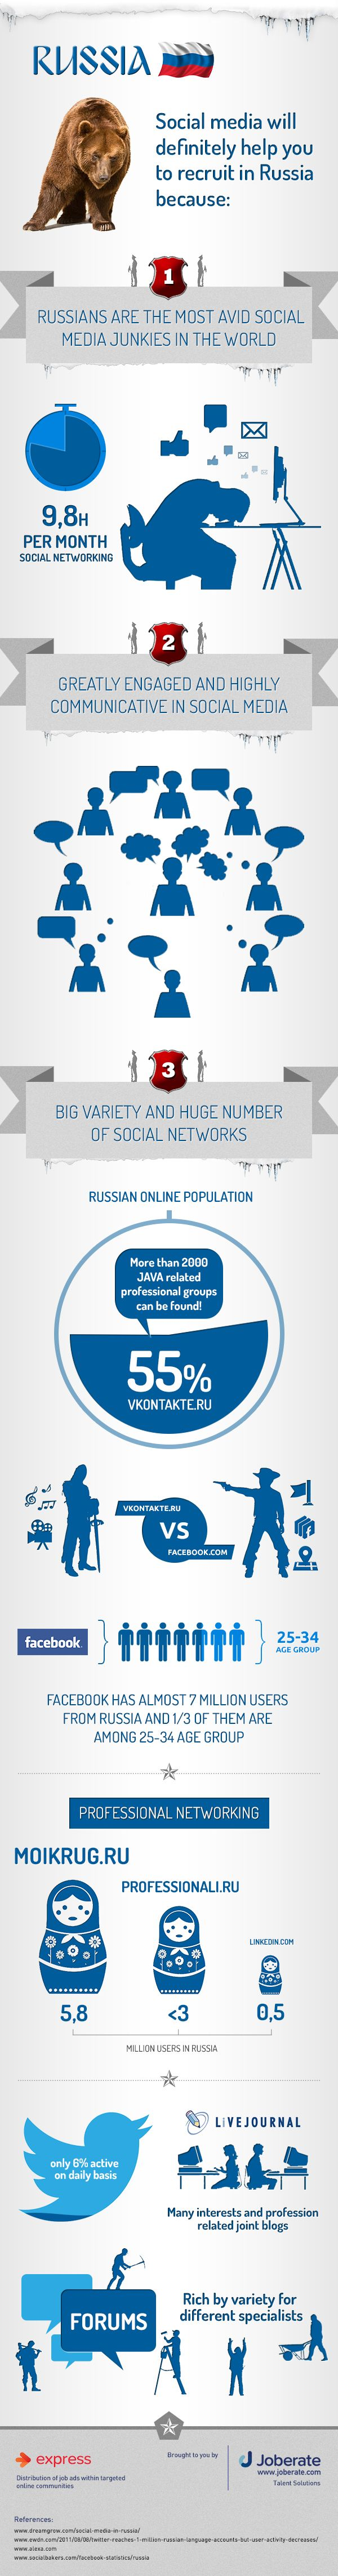 Social Media Will Definitely Help You To Recruit In Russia [INFOGRAPHIC] #socialmedia #Russia